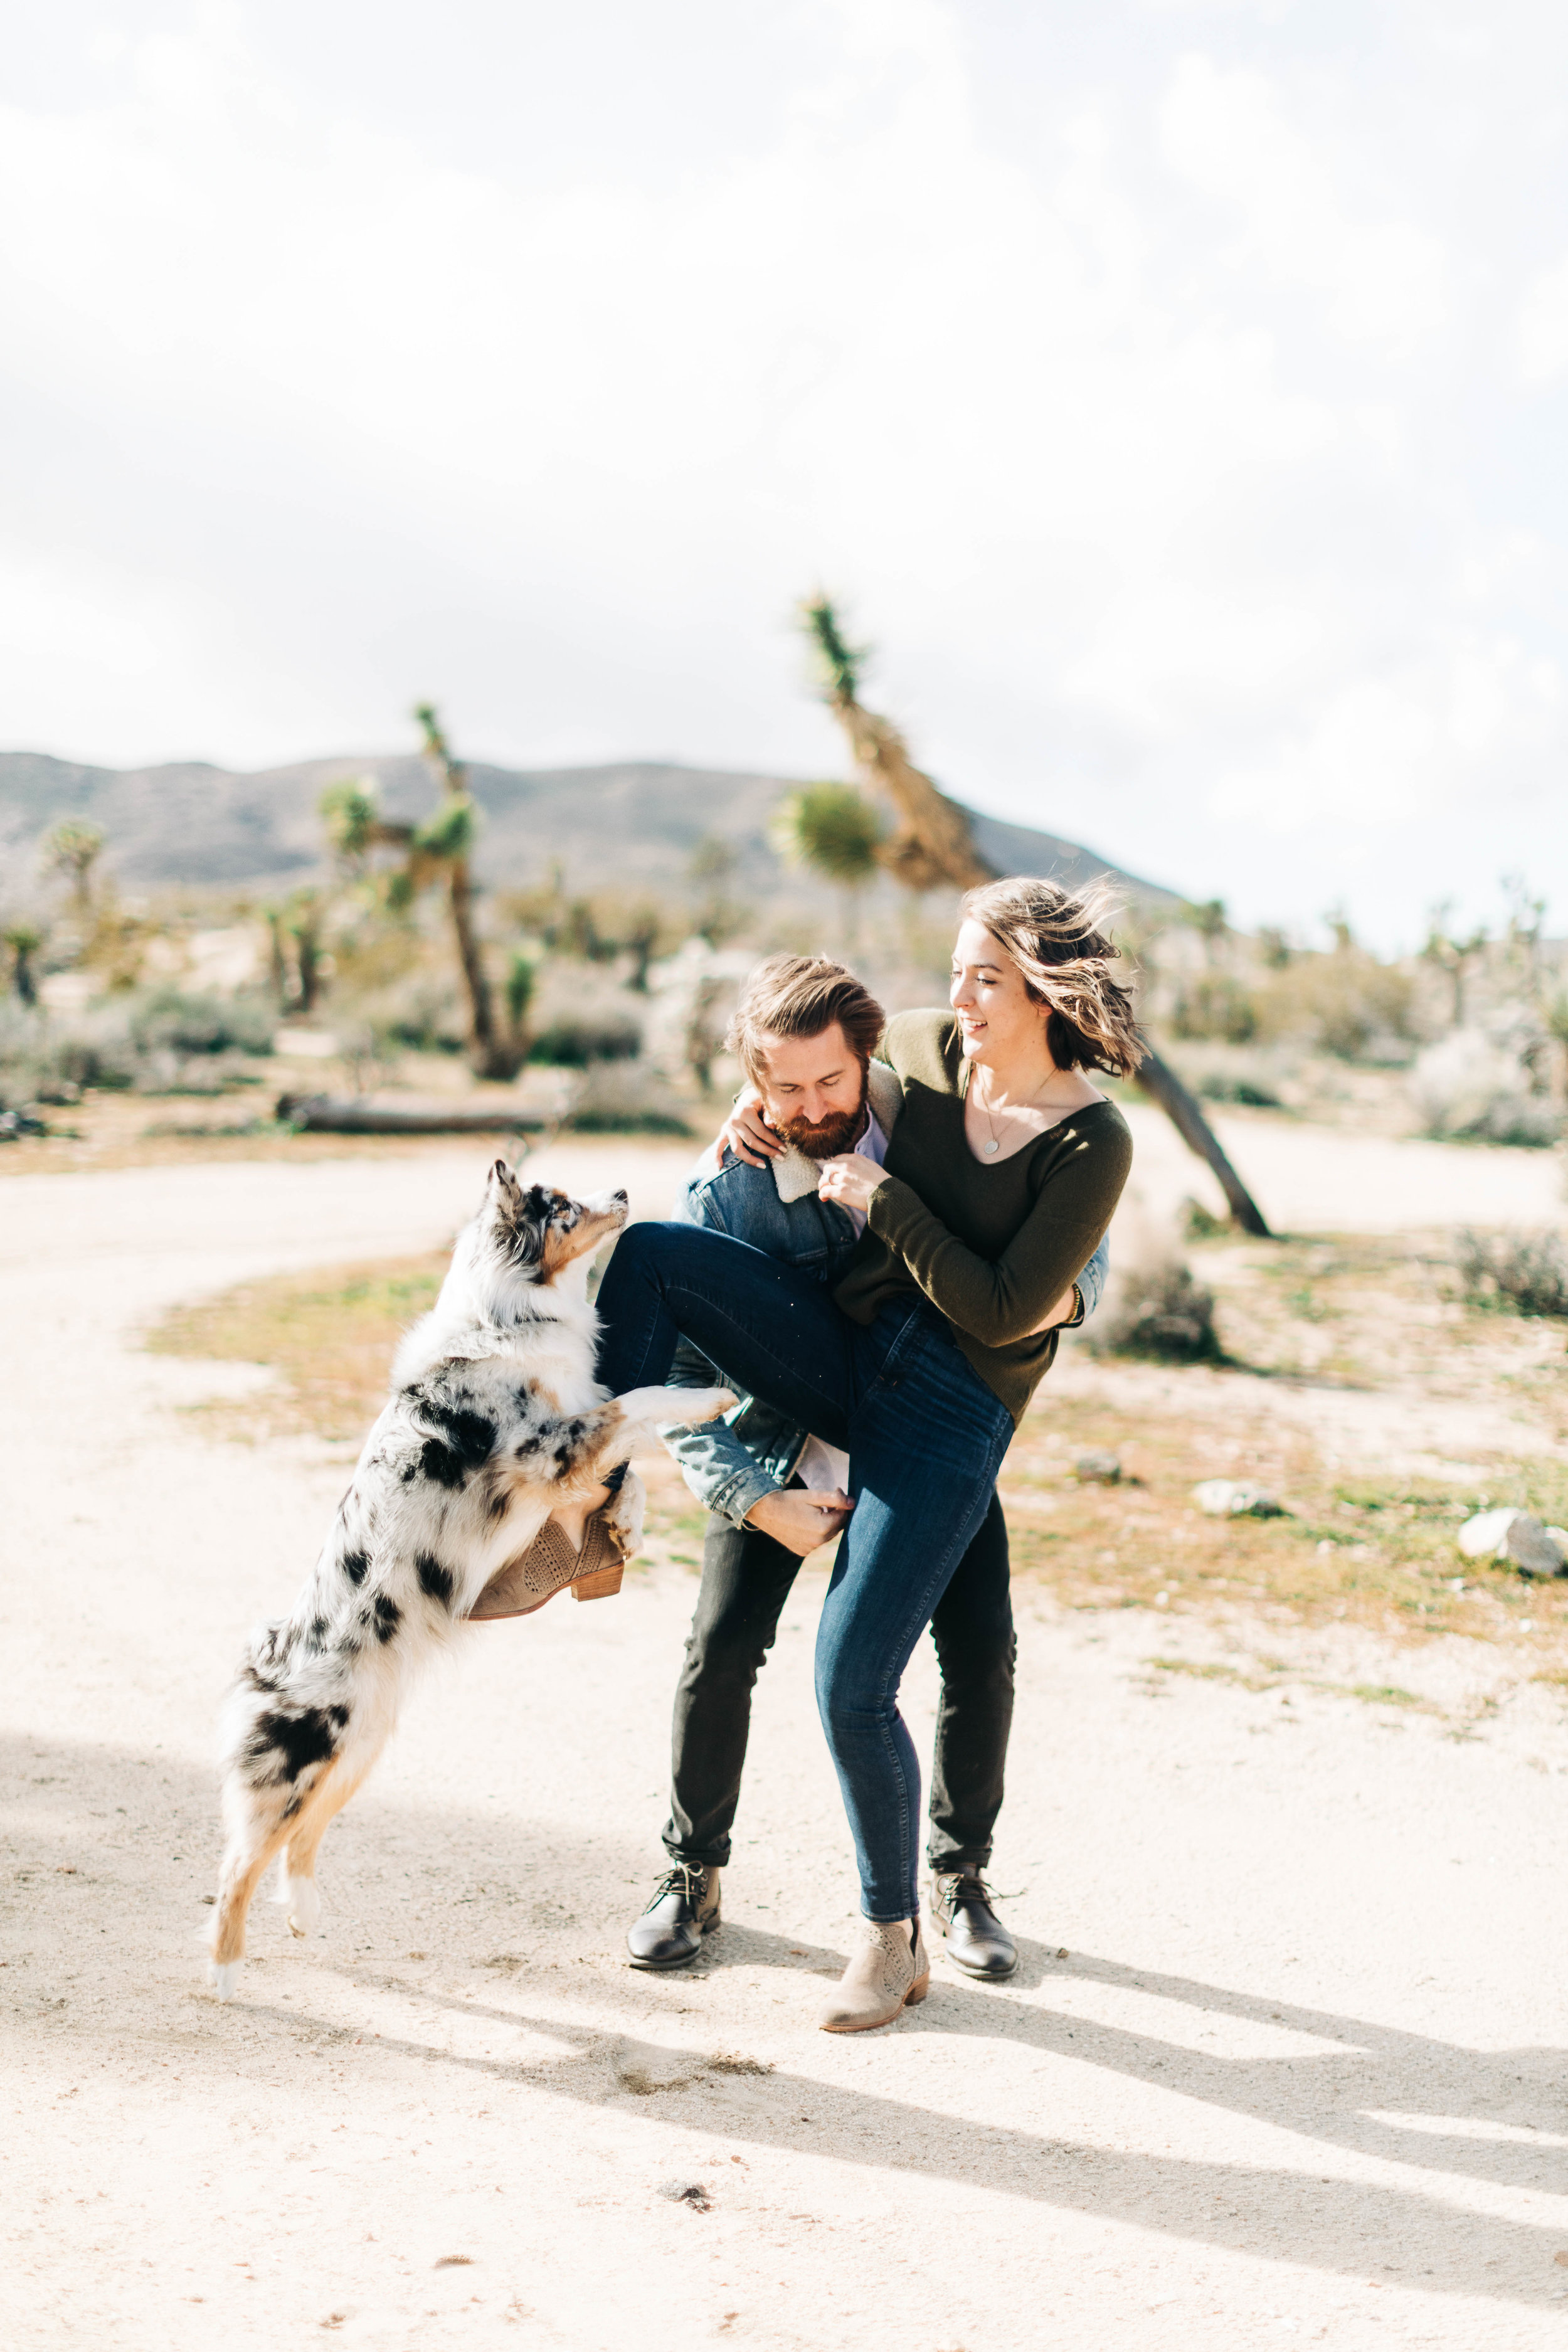 Hayley&Boomer_Joshua-Tree-Engagement-Photos_Tiny-Home_Southern-California-Wedding-Photographer_41